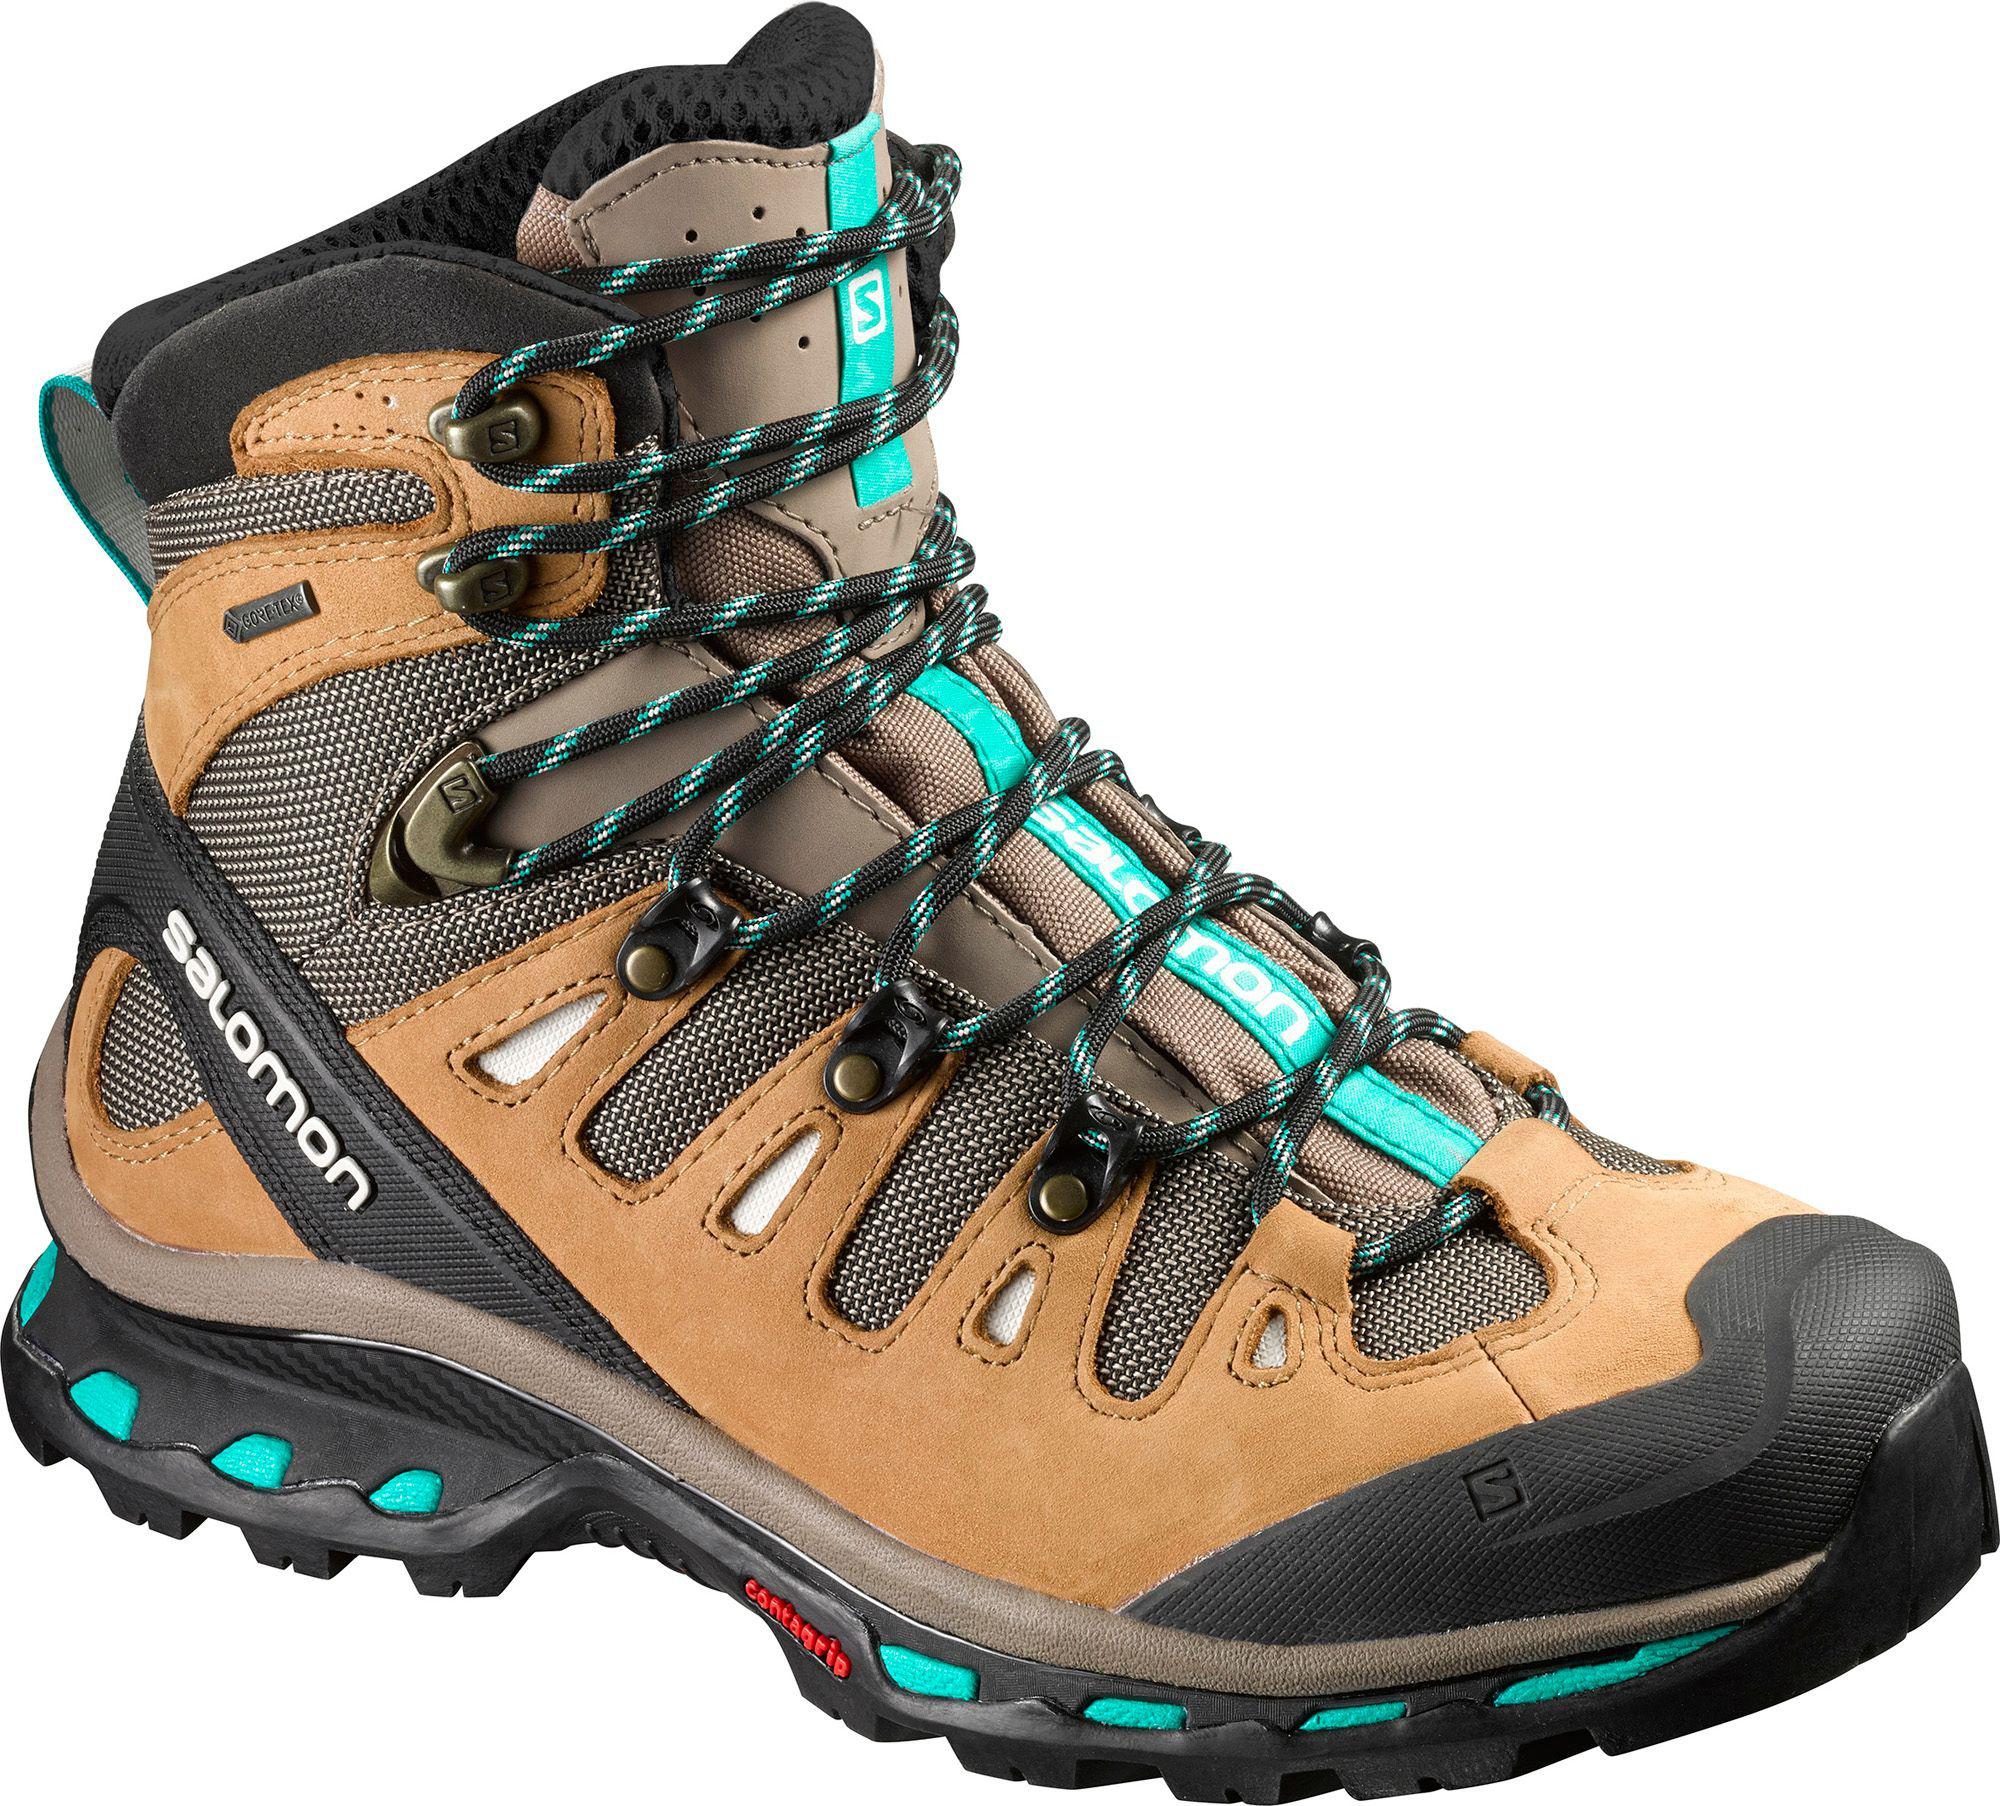 1a8b623ca89c Salomon Waterproof Hiking Shoes - Wallpaper HD Shoes Hbthenextwave.Org